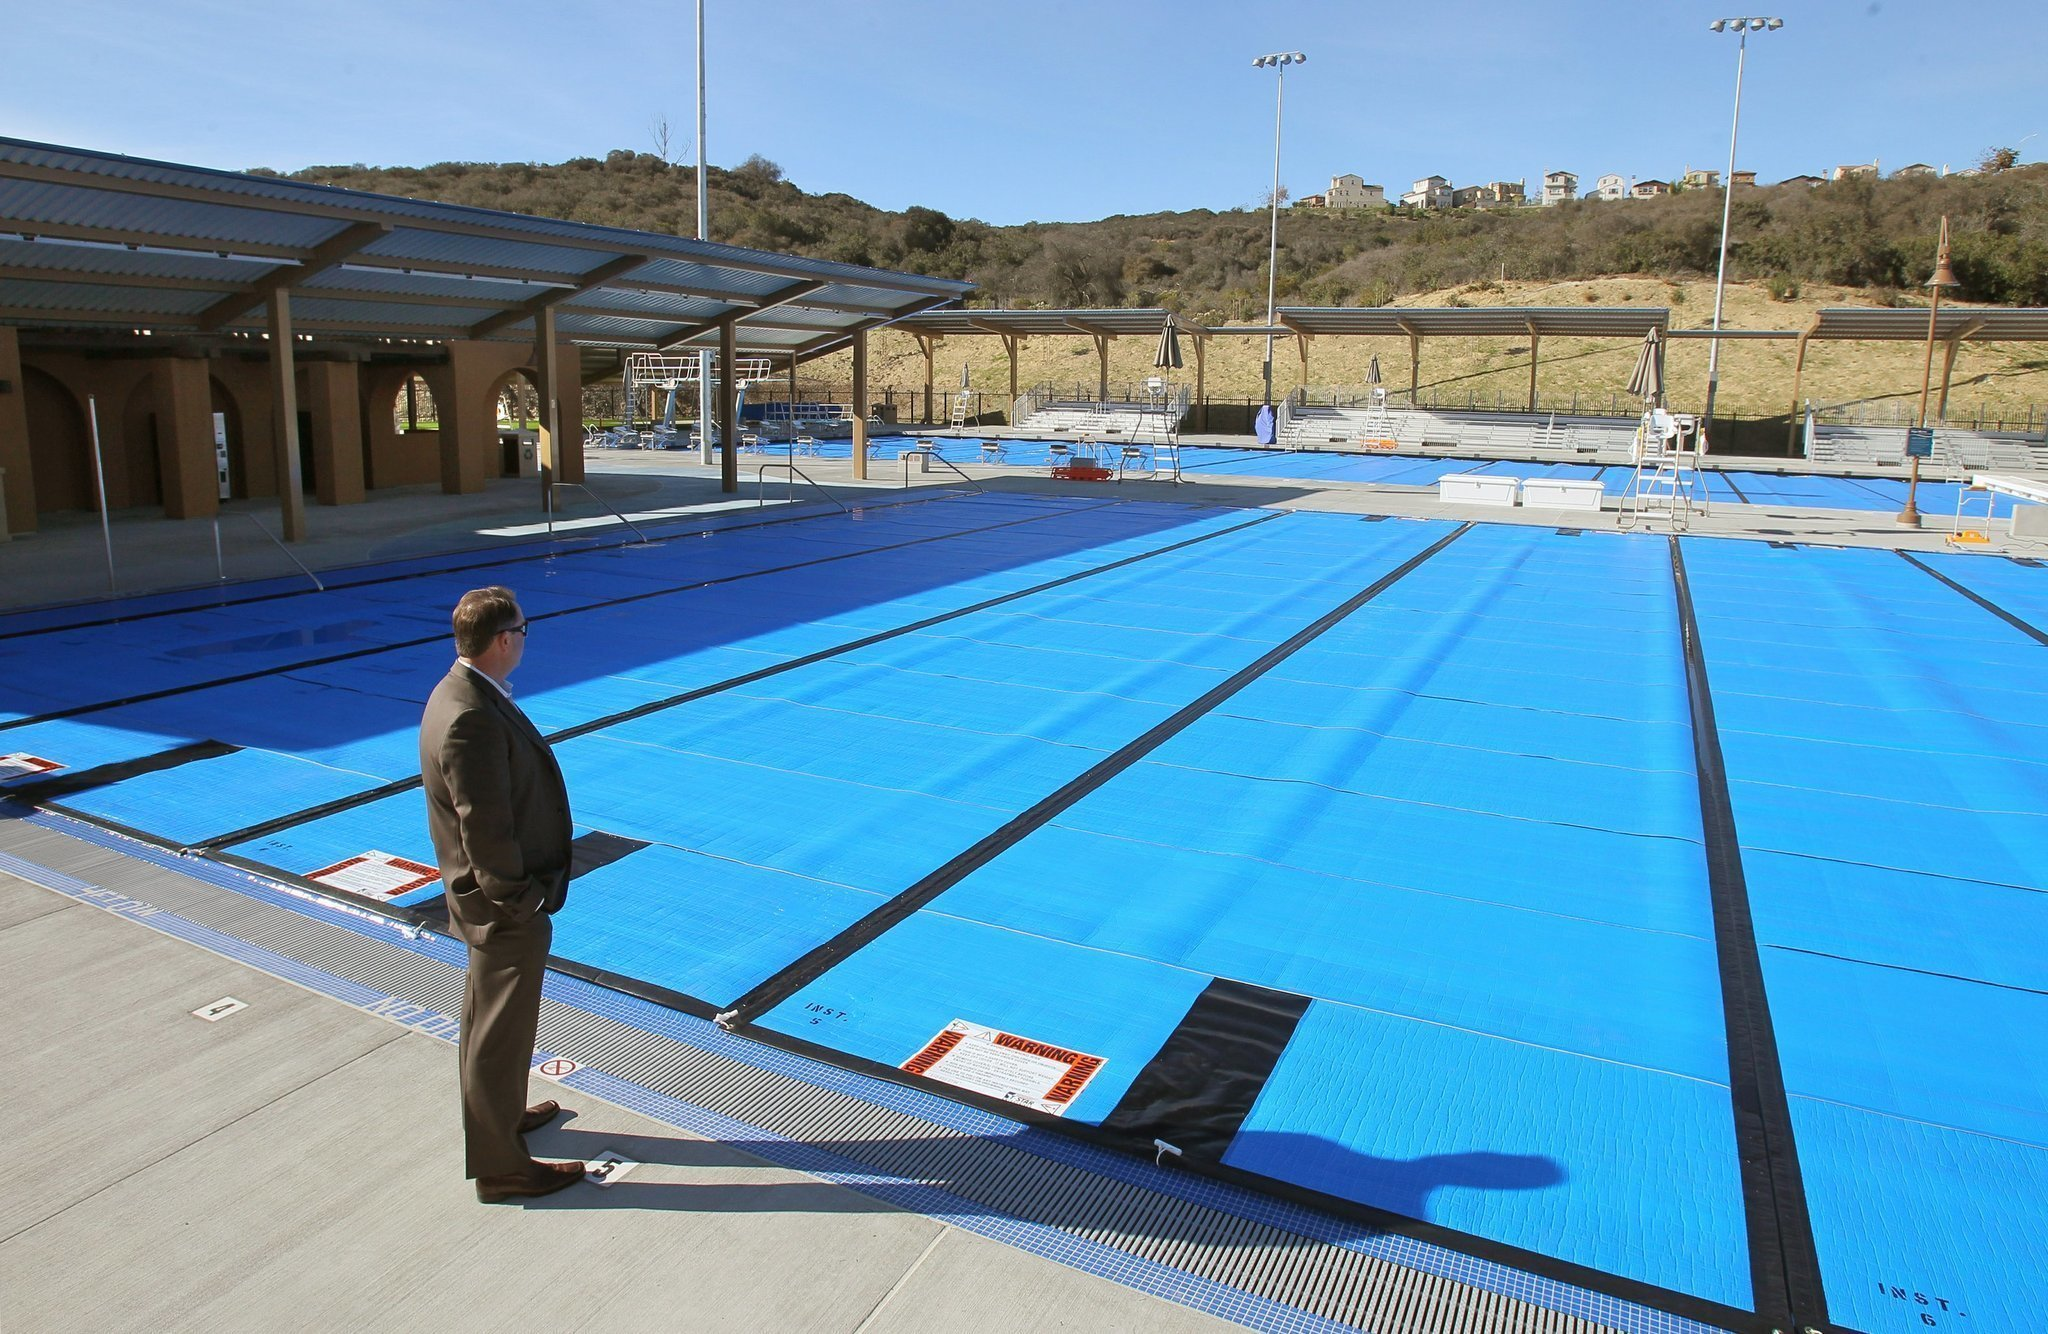 Elaborate aquatics complex opening in carlsbad the san - Is there sales tax on swimming pools ...